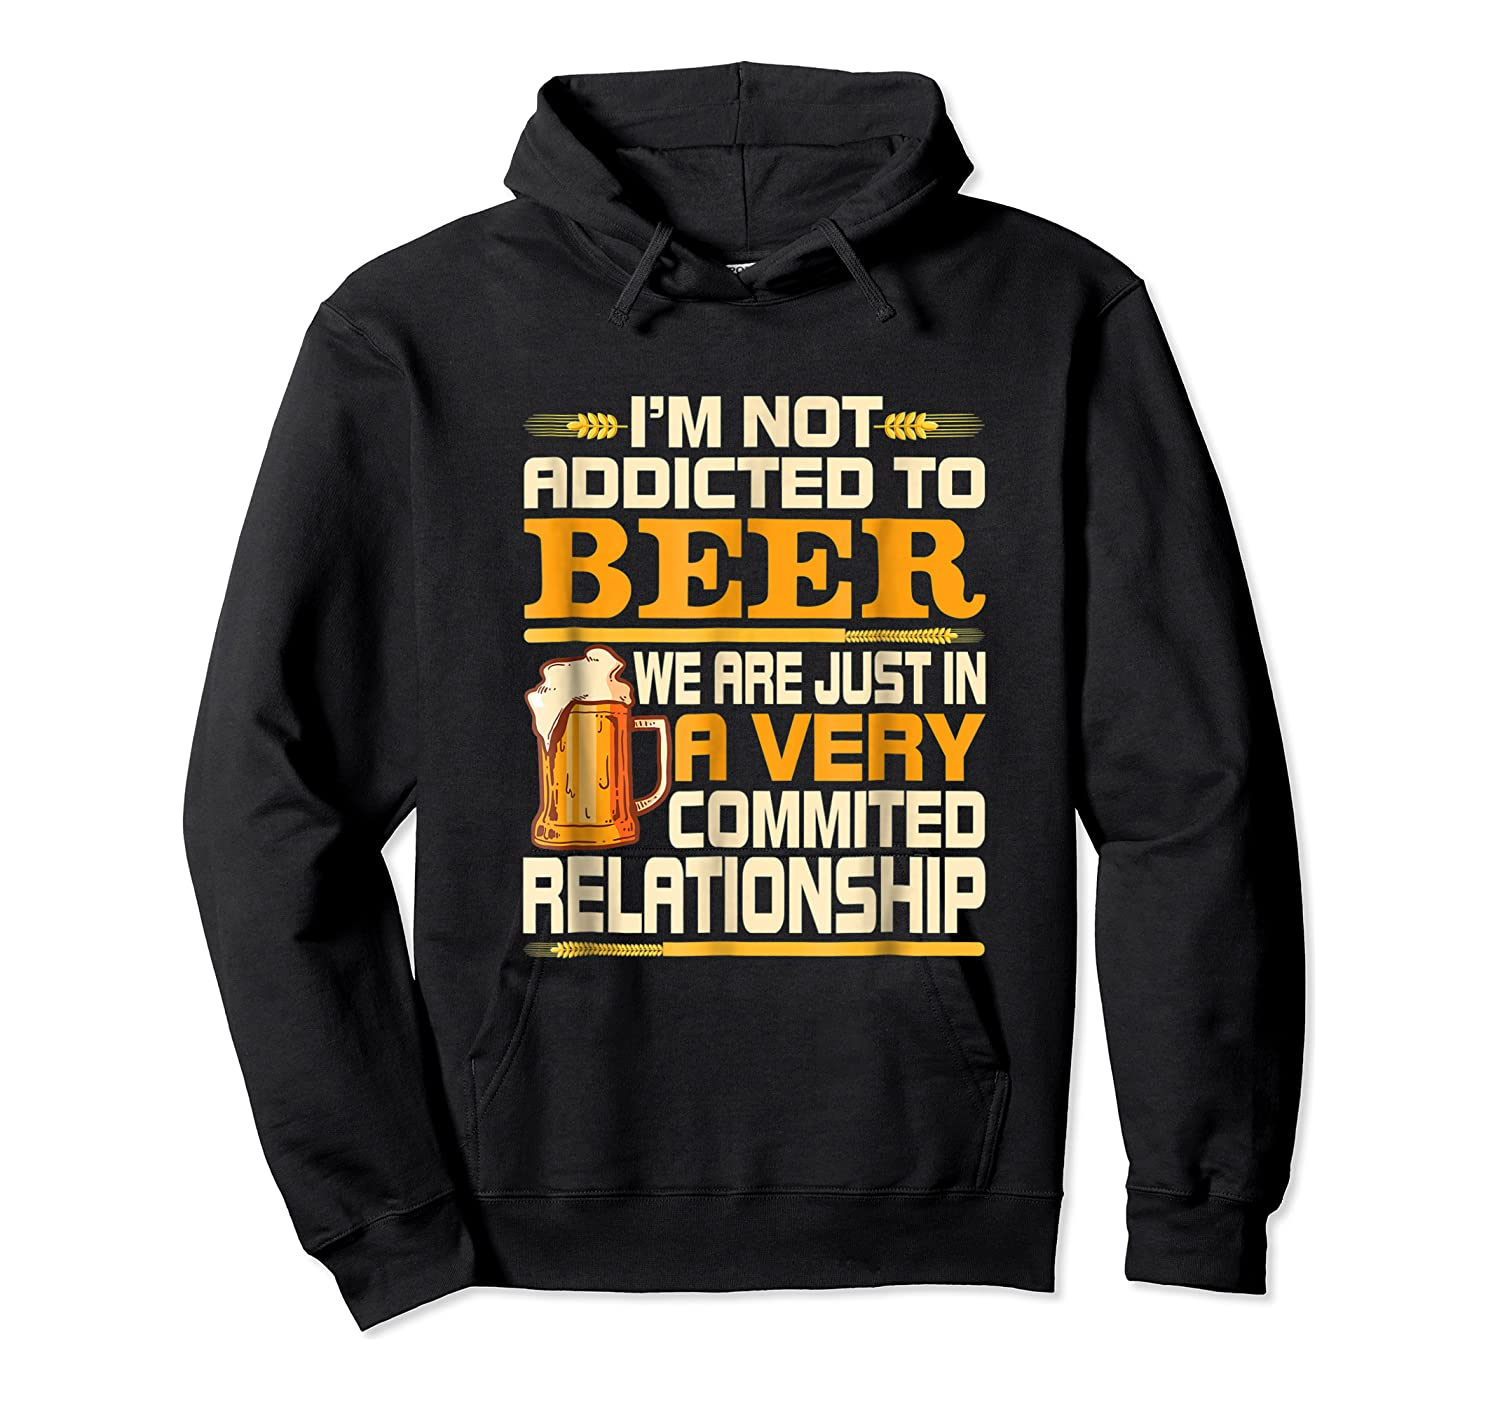 I'm Not Addicted To Beer Funny Beer Addicted Drinking Shirts Unisex Pullover Hoodie